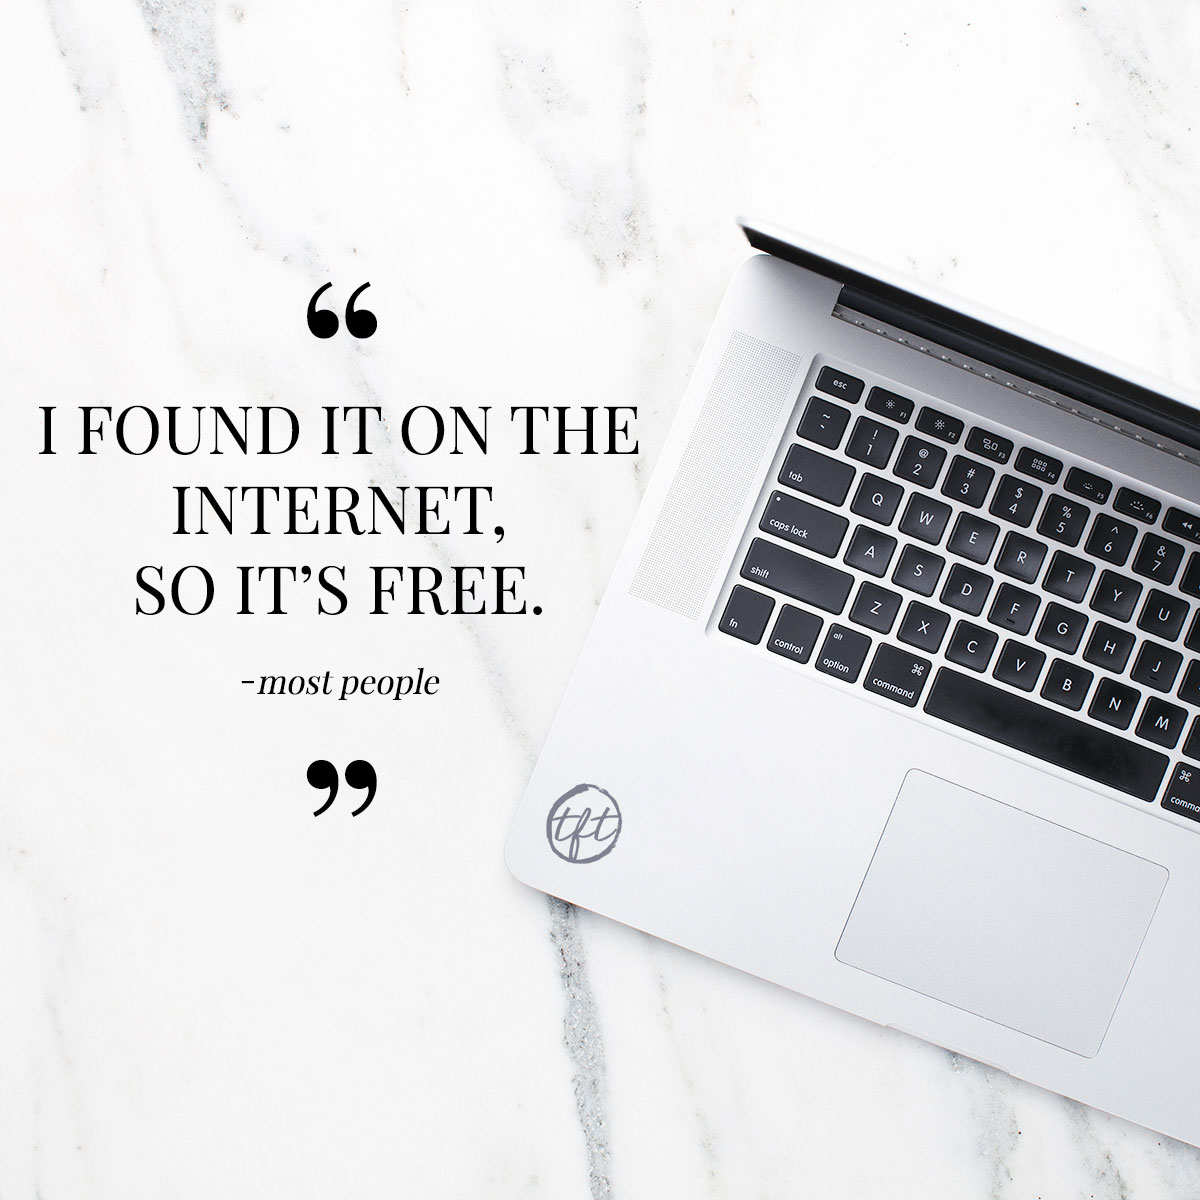 Explaining the common misconception that everything found on the internet is free. Just because you found this image on Google, it does not mean it is free!